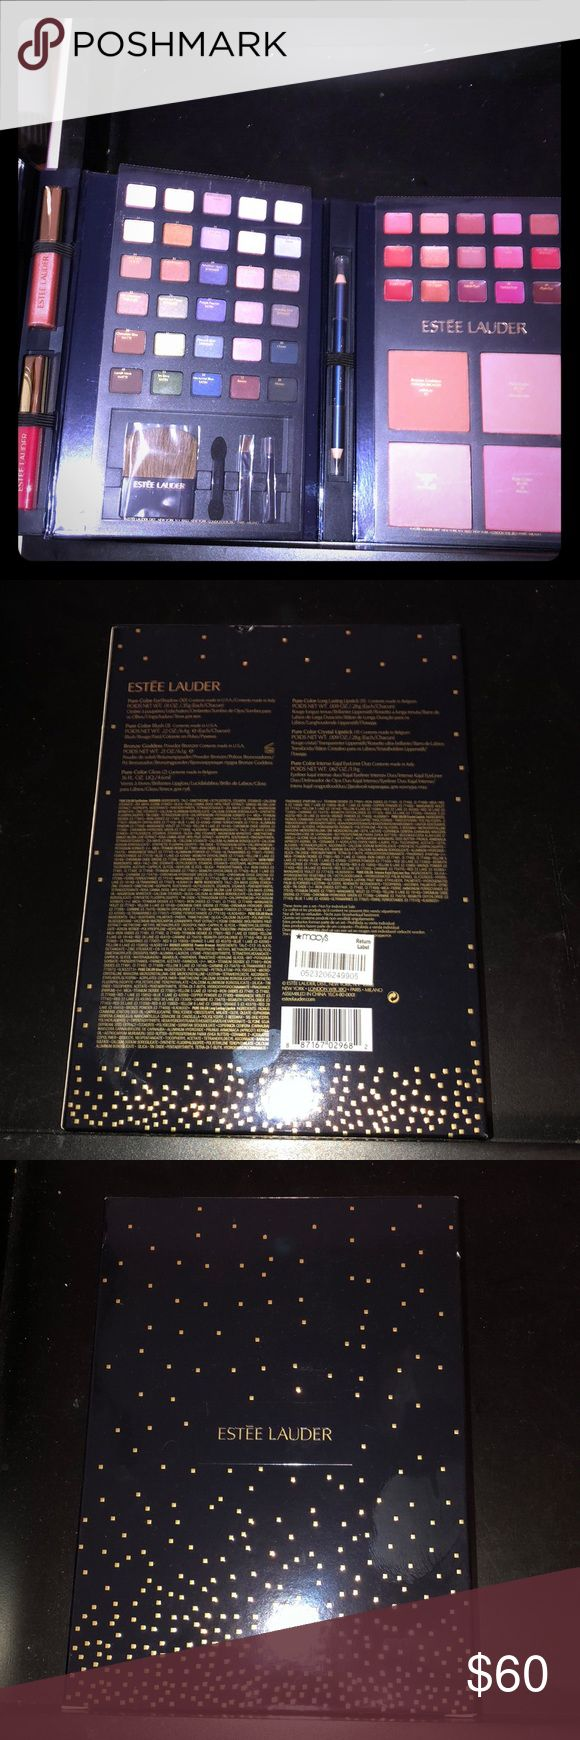 🆕Limited Edition Estée Lauder Makeup Set 30 Eyeshadows, 3 Blushes, 1 Bronzer, 2 Deluxe Lip Glosses, 15 Lipstick Pans, 1 Eyeliner Duo, and Mini Makeup Brush Set New and Unused. All Offers Will Be Considered. No Trades. A Random Makeup Sample Will Be Included with Every Package! The Bigger the Bundle the Better the Sample! Loyalty Buyers Will Receive a Free Gift on the Third Transaction! Estee Lauder Makeup